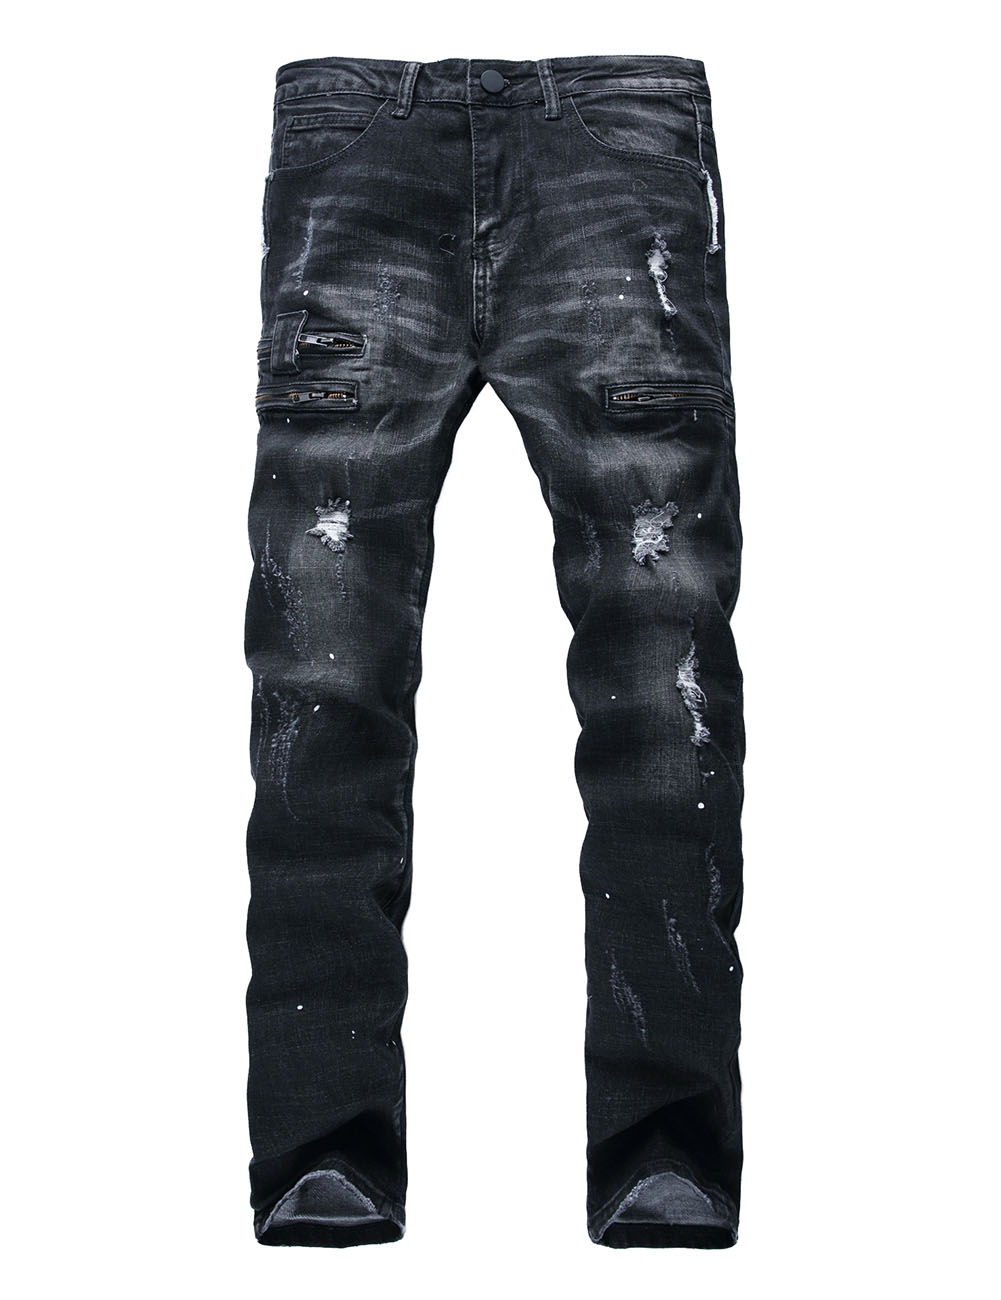 Idopy Fashion Mens Distressed Ripped Hipster Hip Hop Biker Jeans For Male